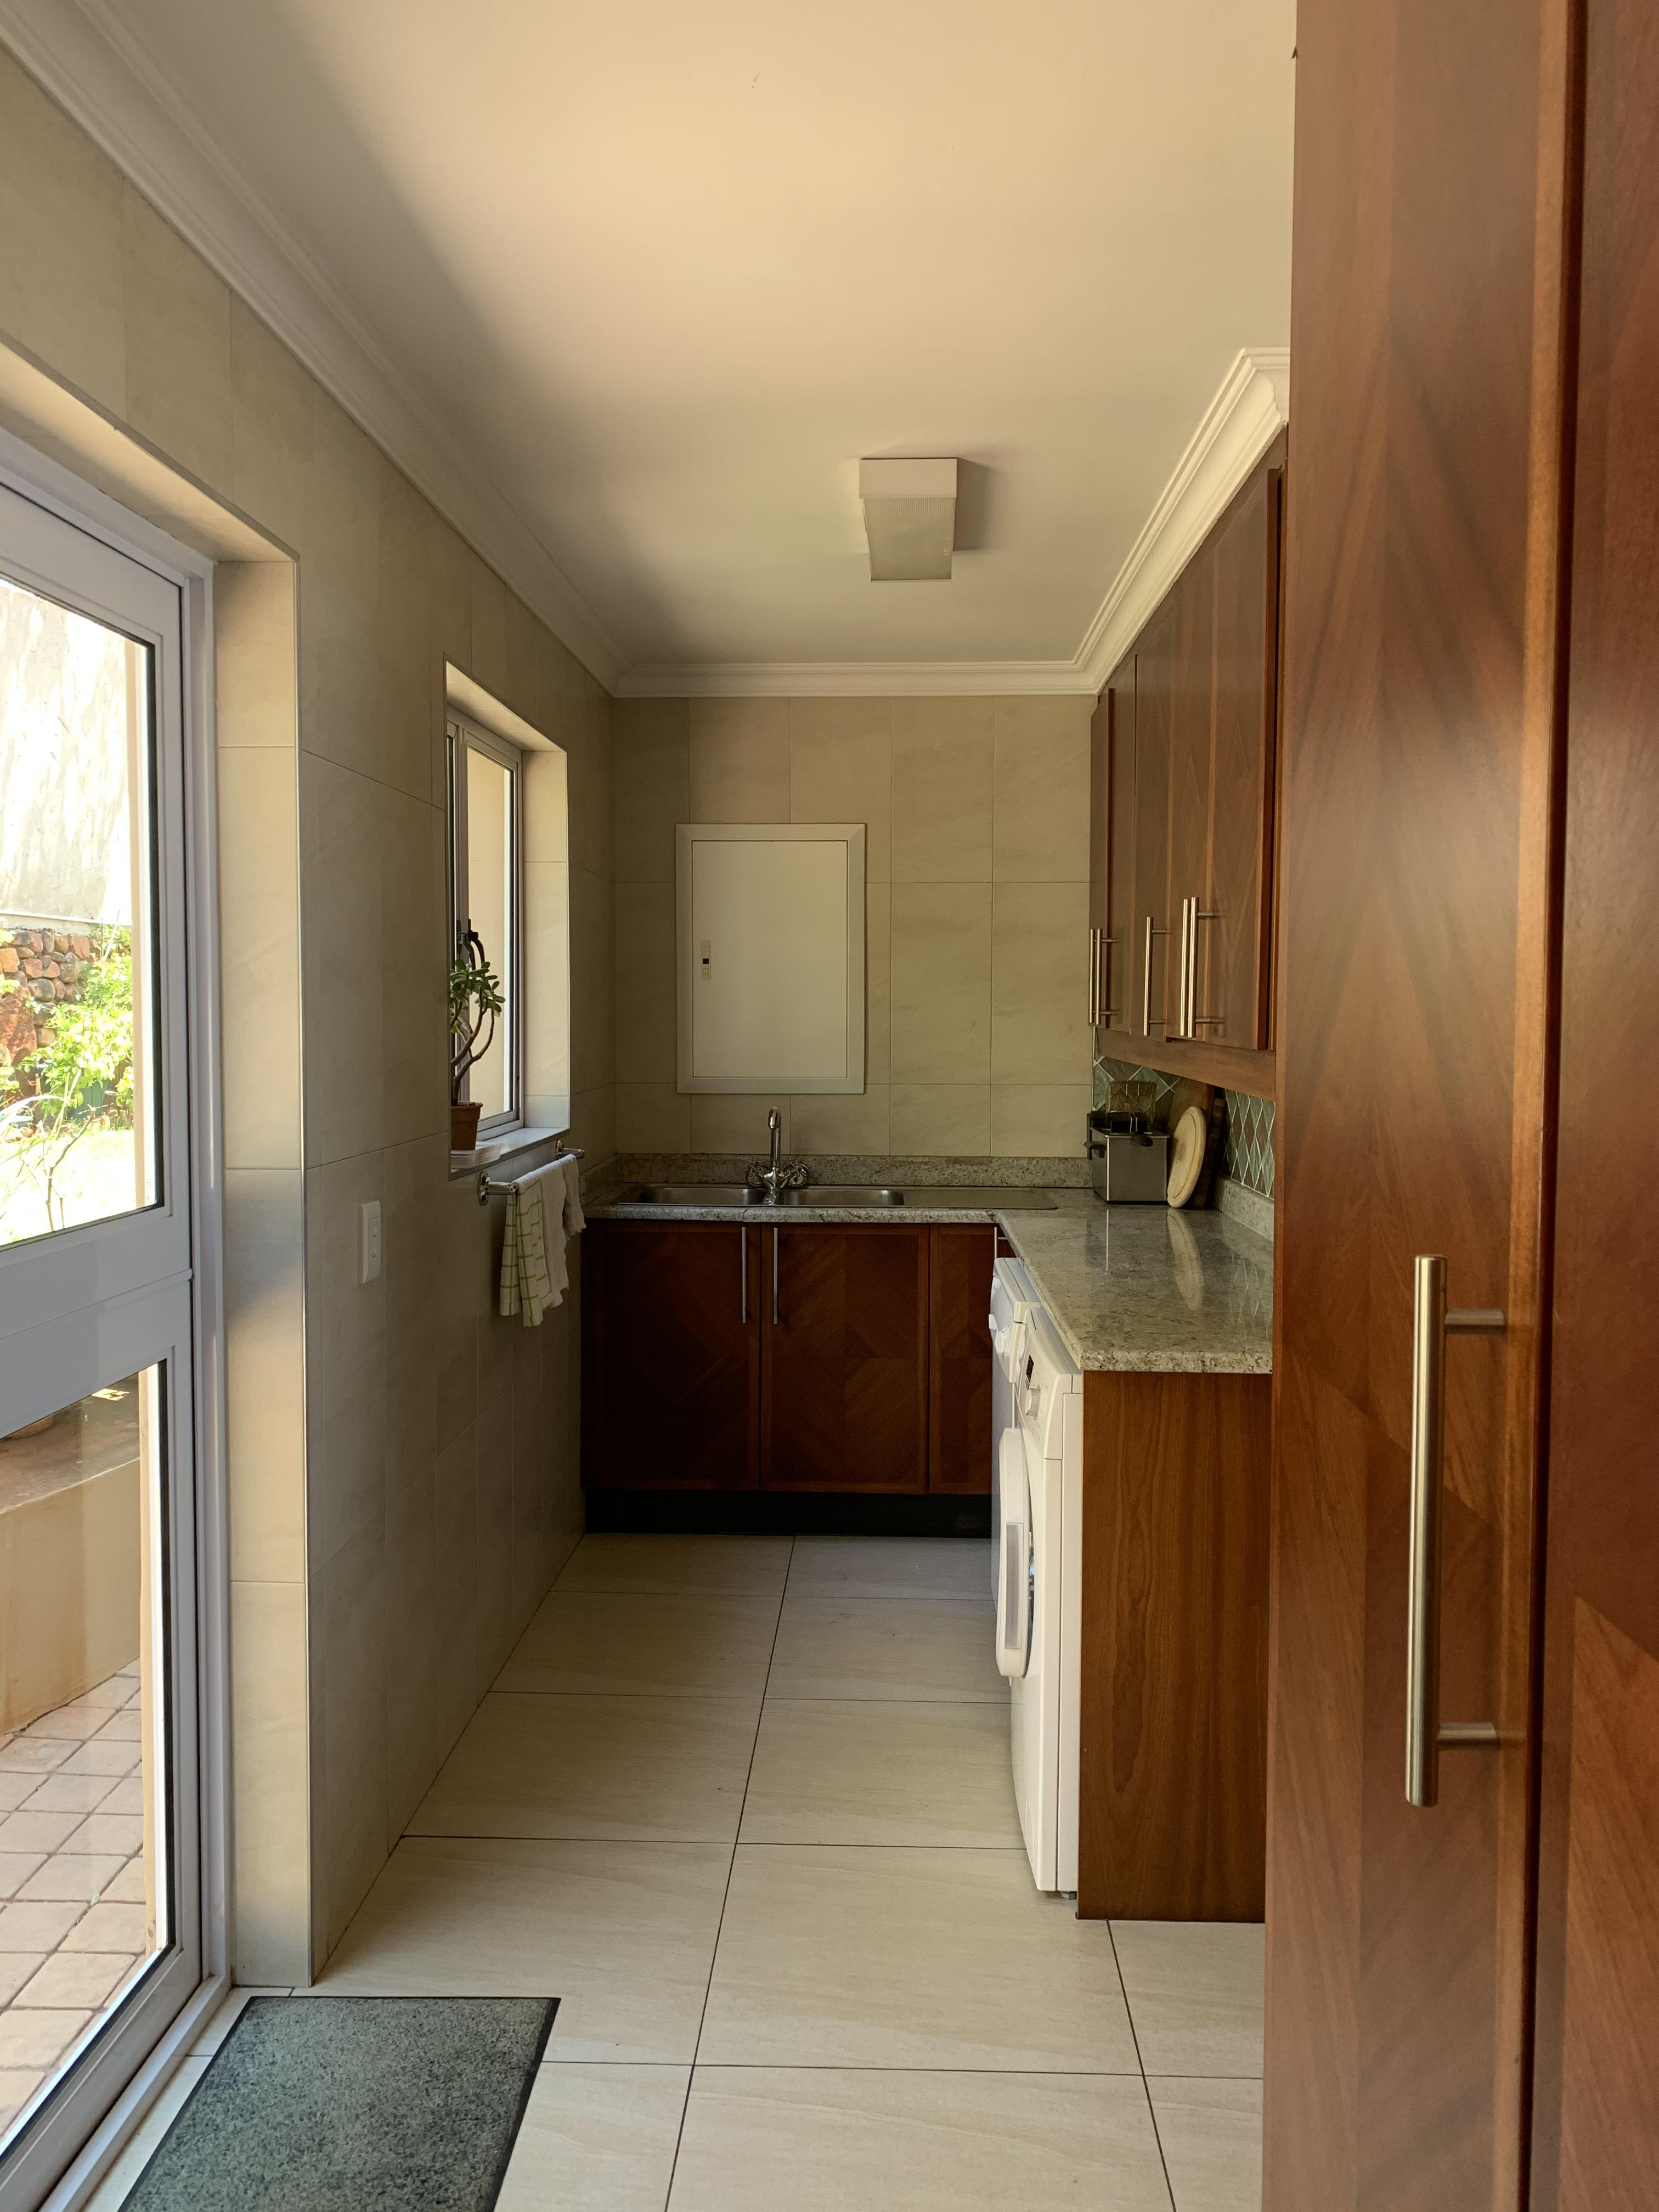 217A anderson, Northcliff, Gauteng, 4 Bedrooms Bedrooms, ,3 BathroomsBathrooms,House,For sale,anderson,1038